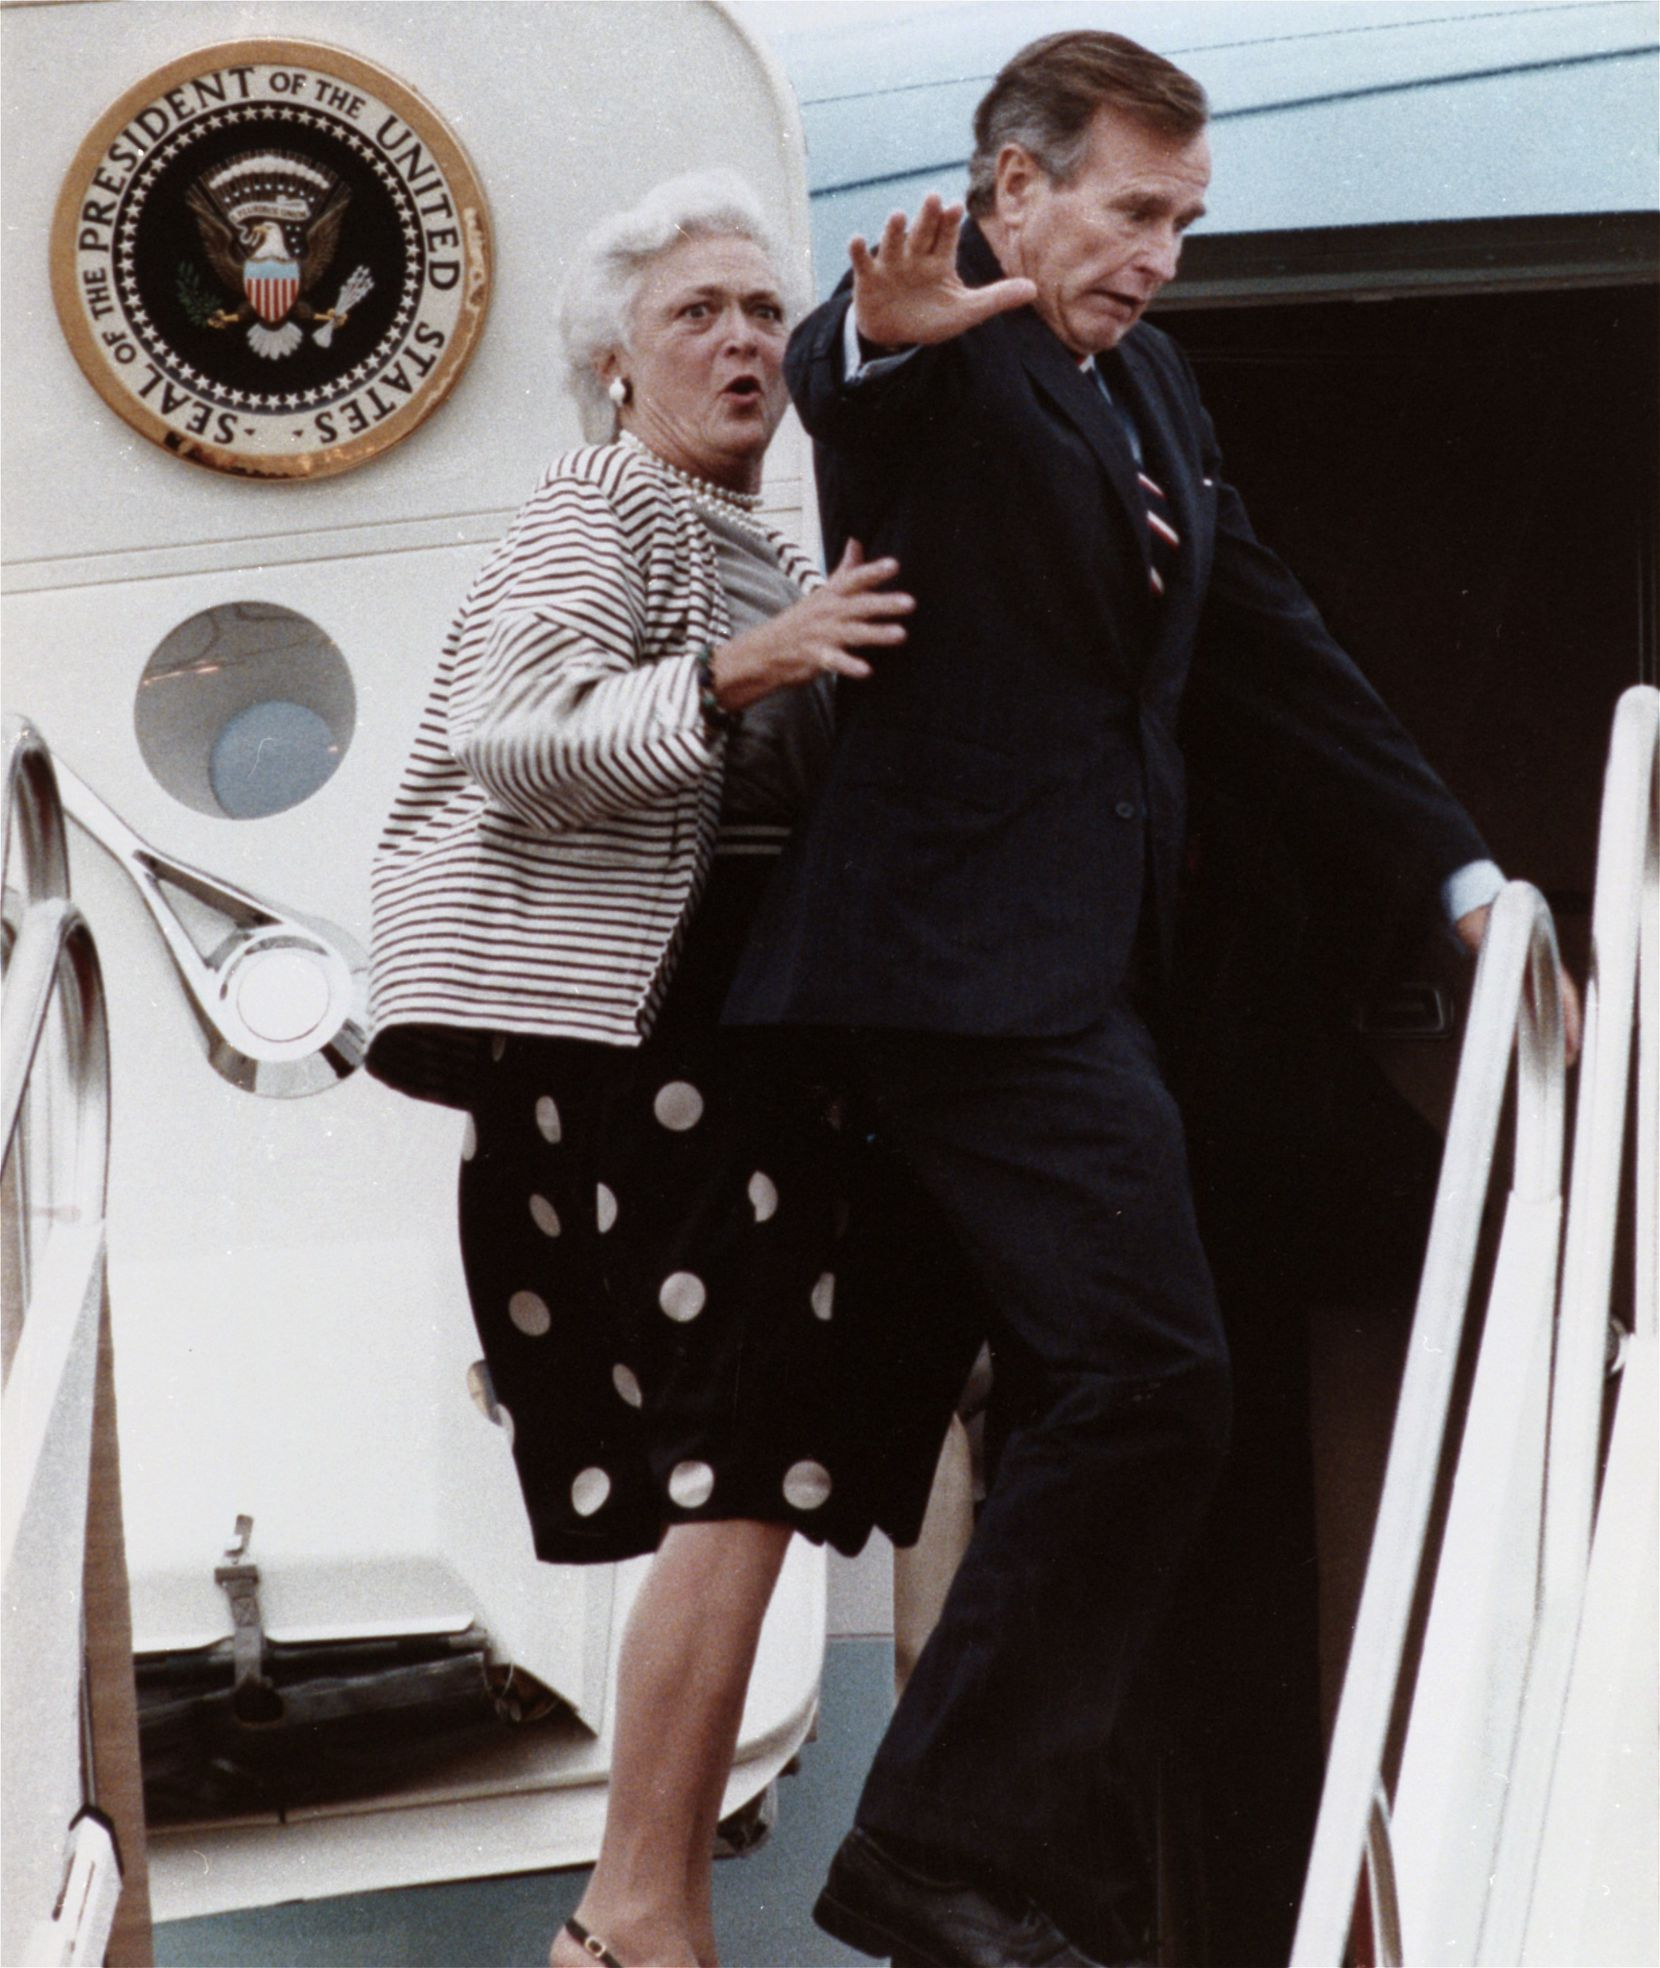 1989: First lady Barbara Bush reacts after President Bush accidentally stepped on her toe while boarding Air Force One at Andrews Air Force Base, Md.